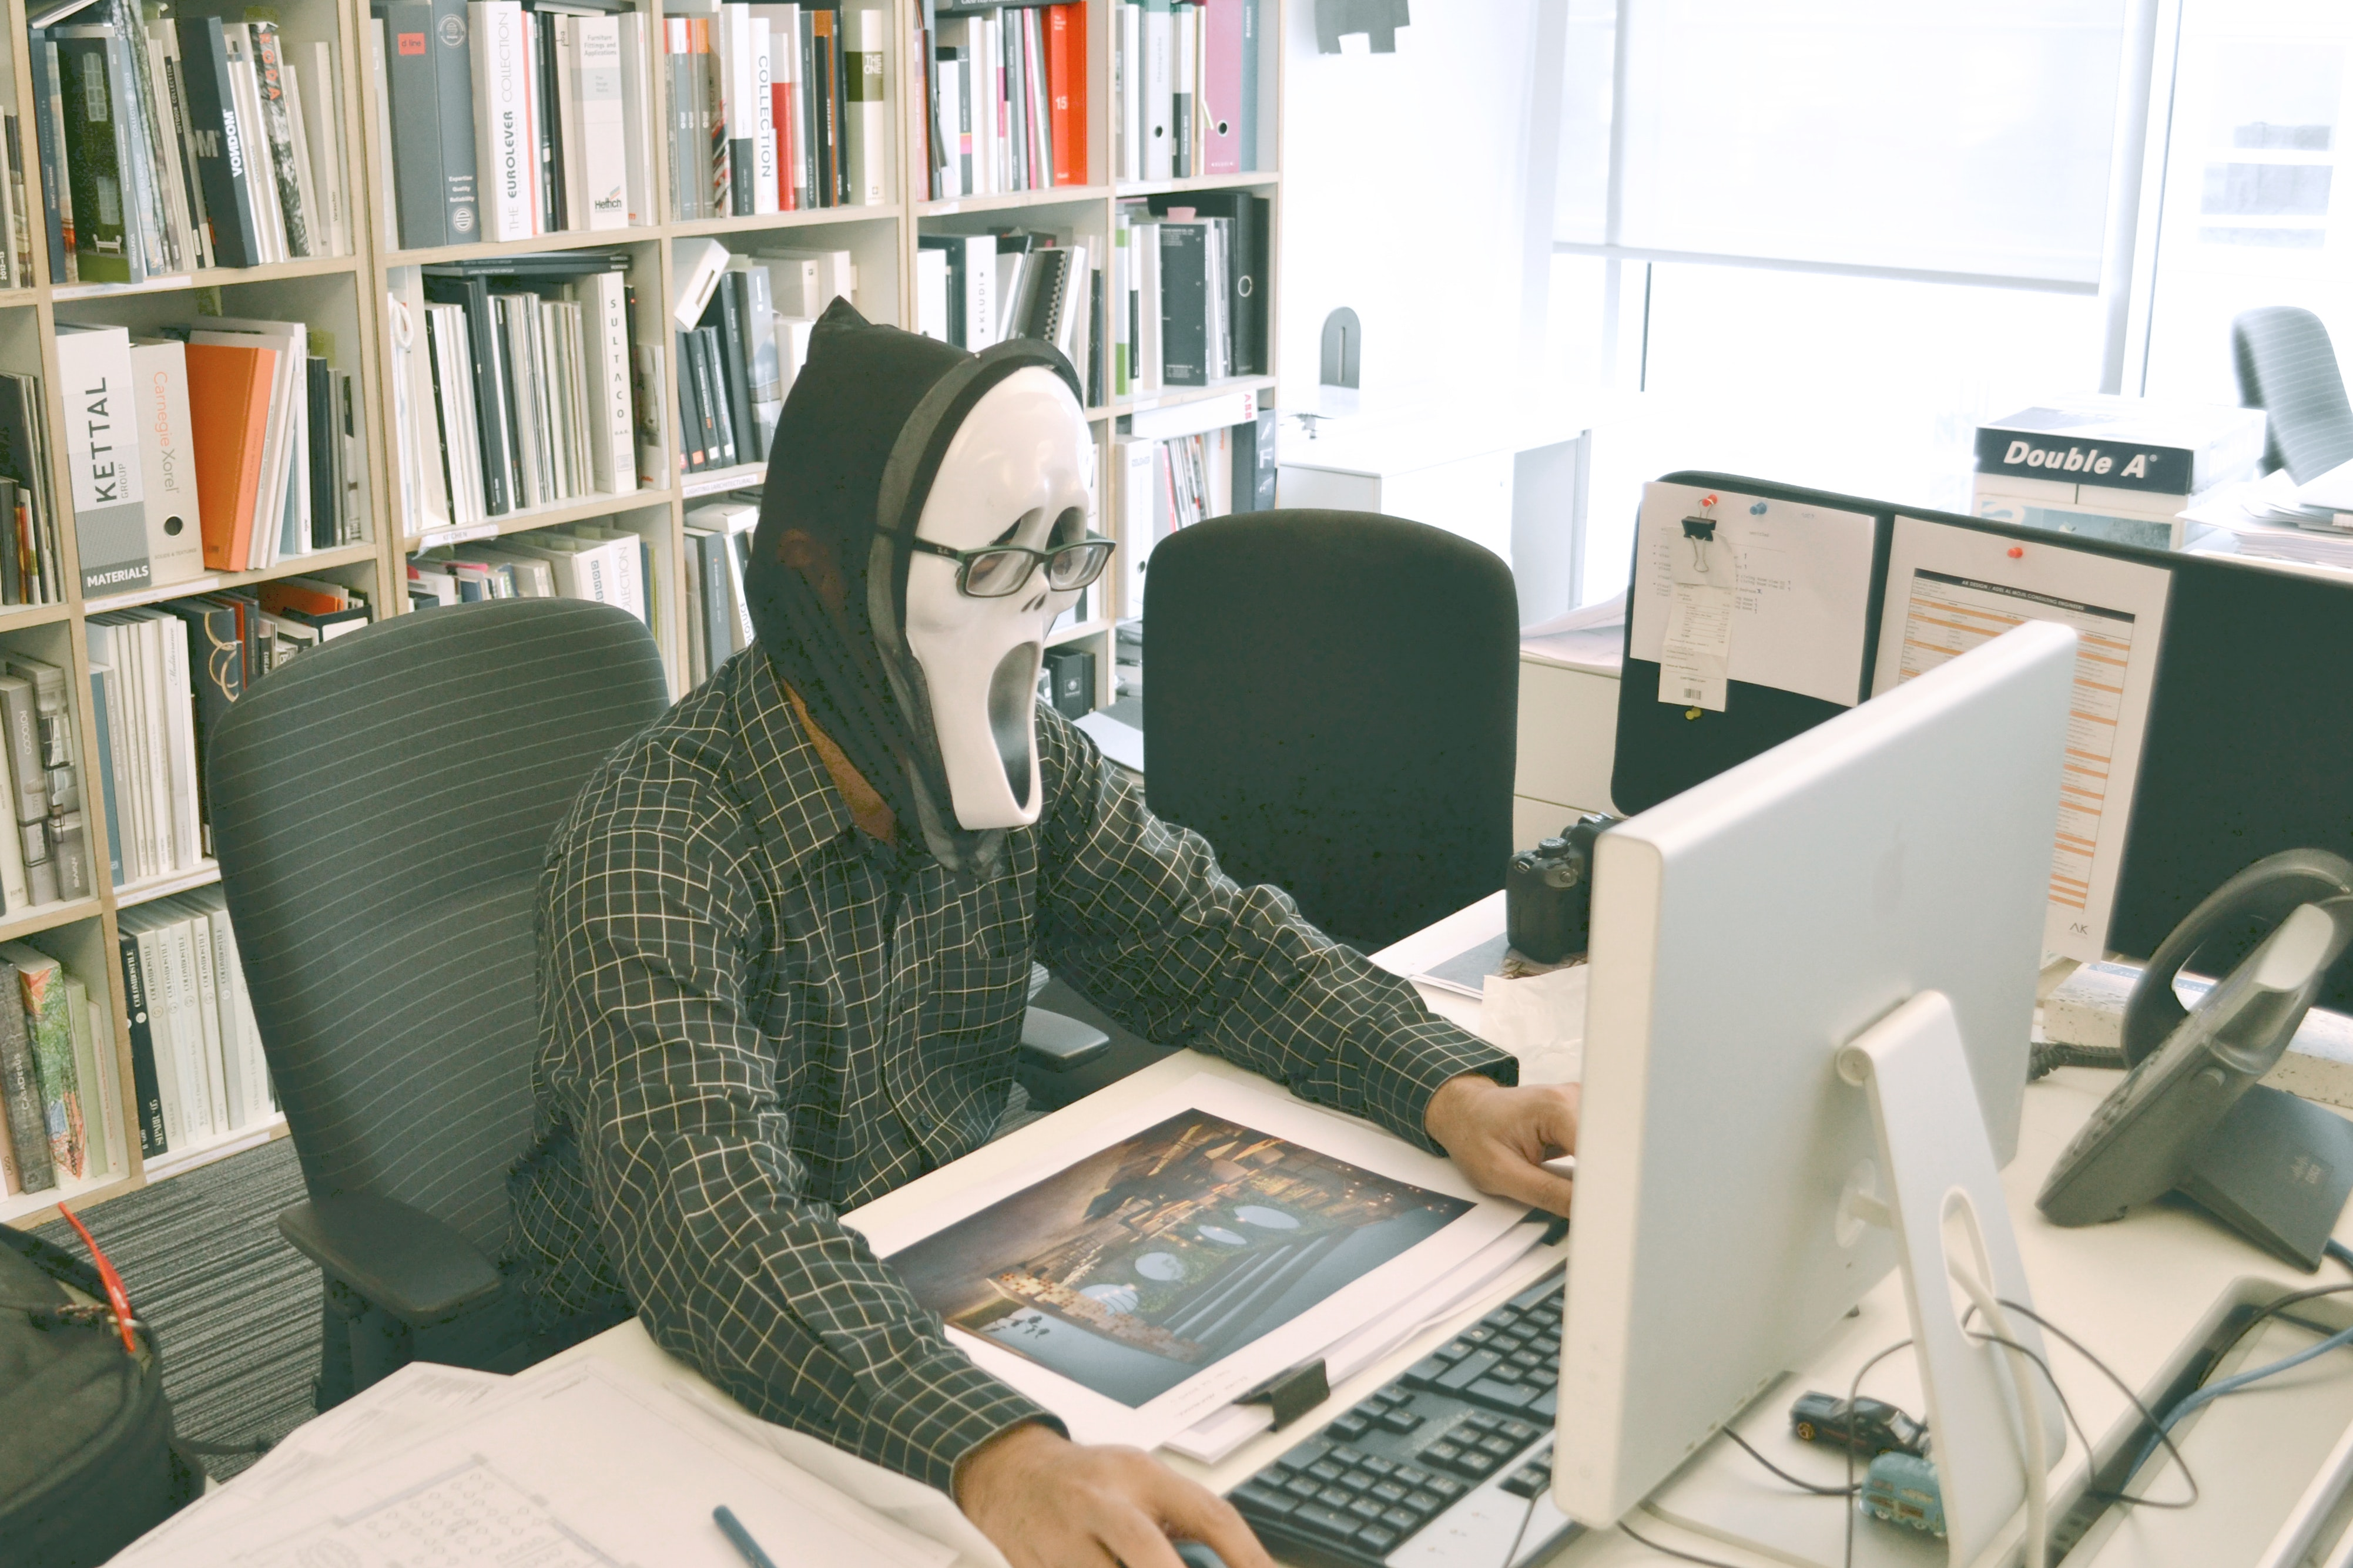 Person wearing scream mask and black dress shirt while facing computer table during daytime photo